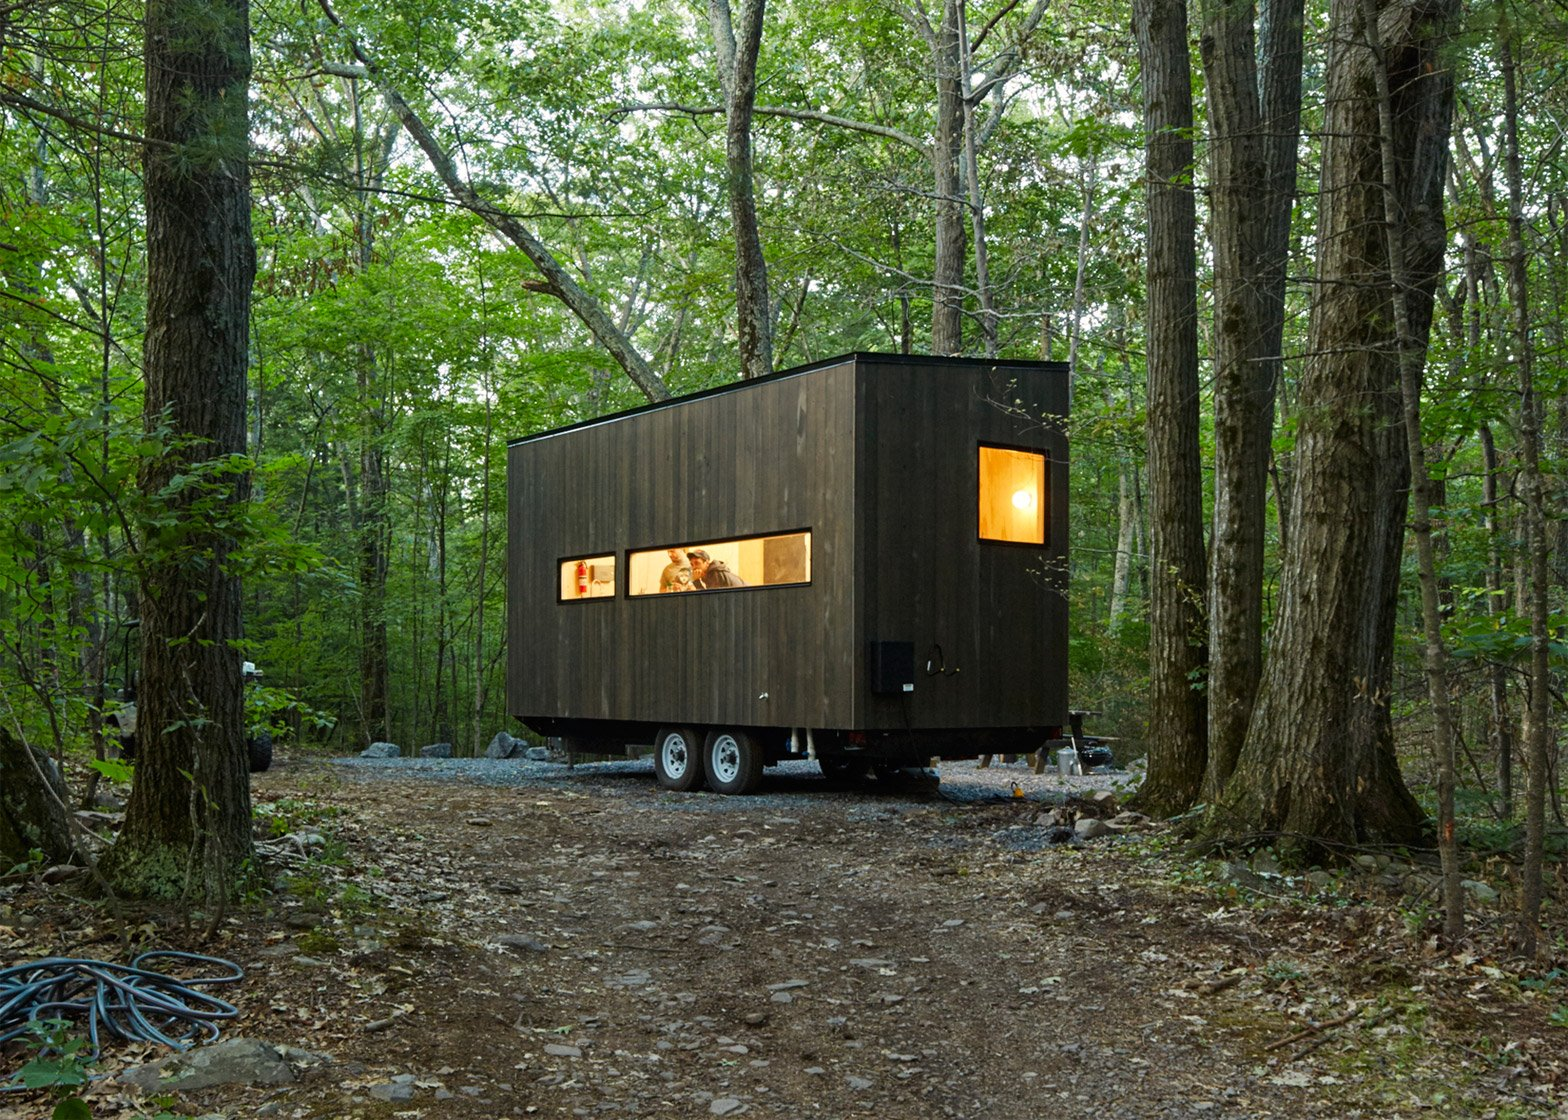 The Eleanor Cabin near New York. Photograph by Roderick Aichinger